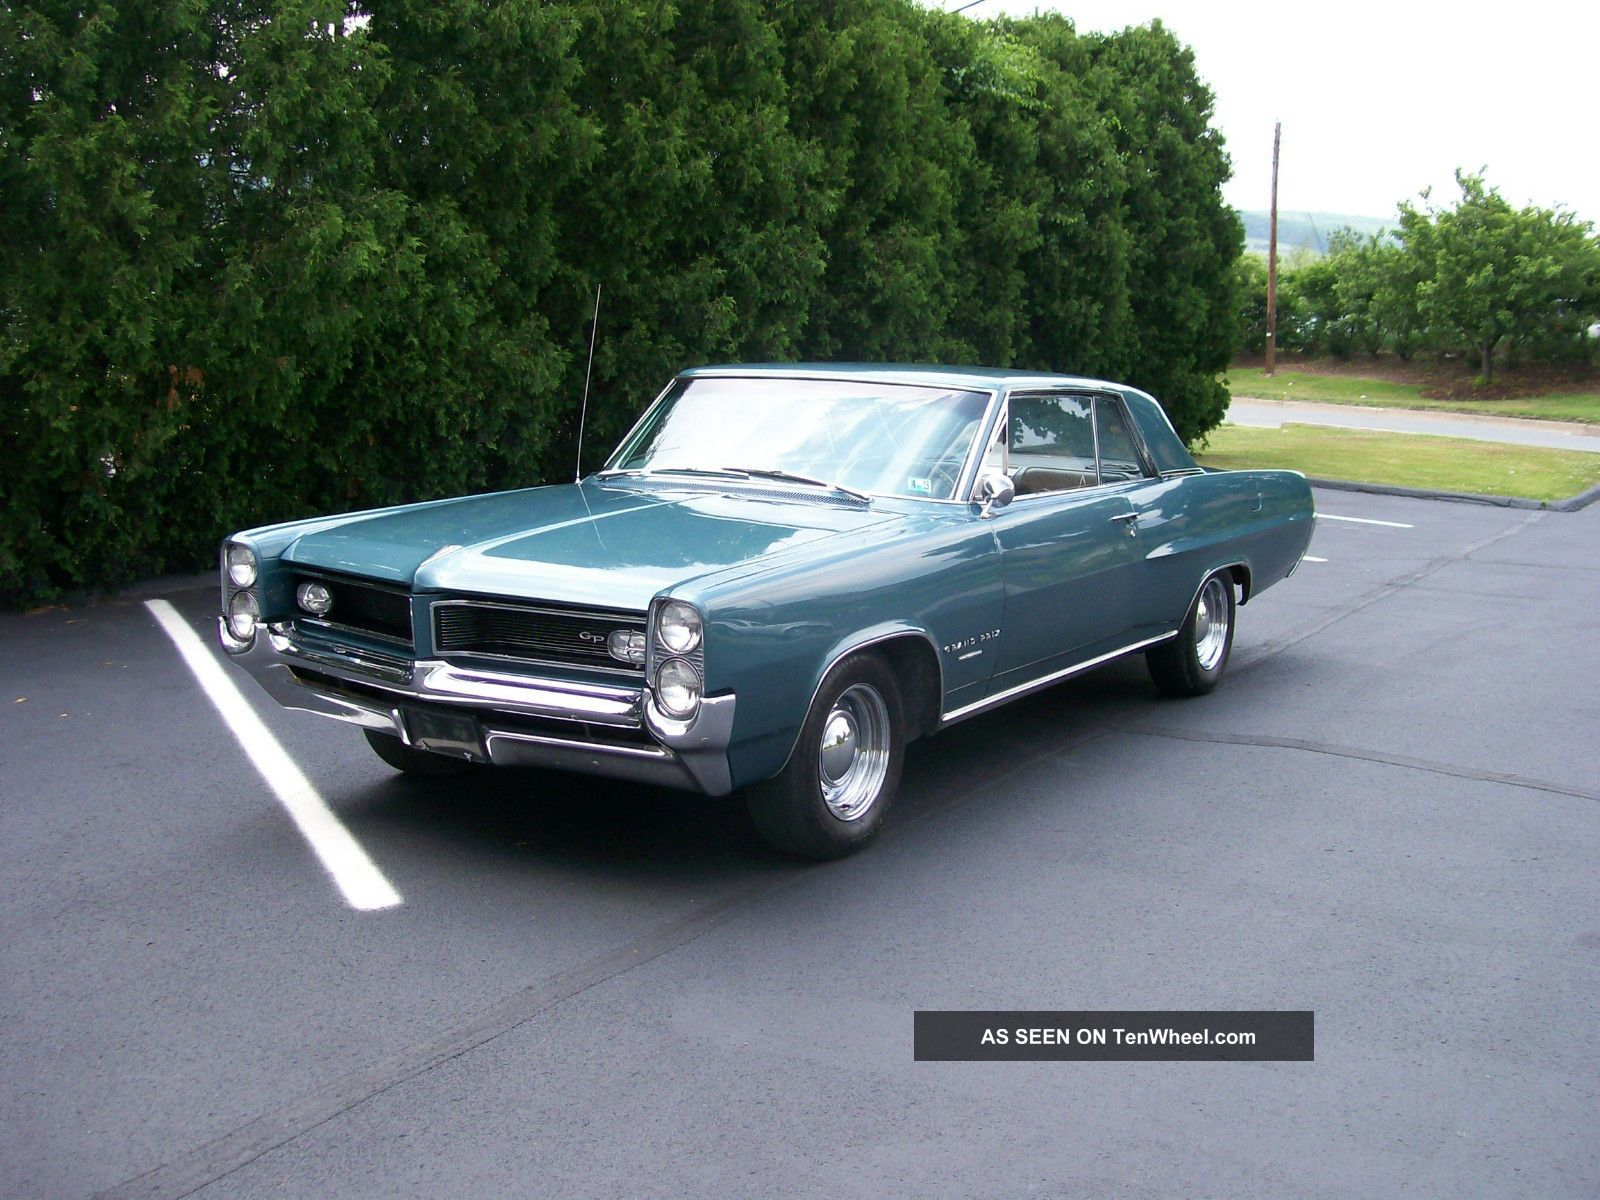 12956 Chevrolet Chevelle 1964 7 moreover 1967 Chevrolet Camaro likewise 35161 1964 pontiac grand prix   2 door hard top together with 1967 CHEVROLET CHEVELLE SS CONVERTIBLE RE CREATION 189293 further Exterior 40183578. on 1964 chevelle malibu ss